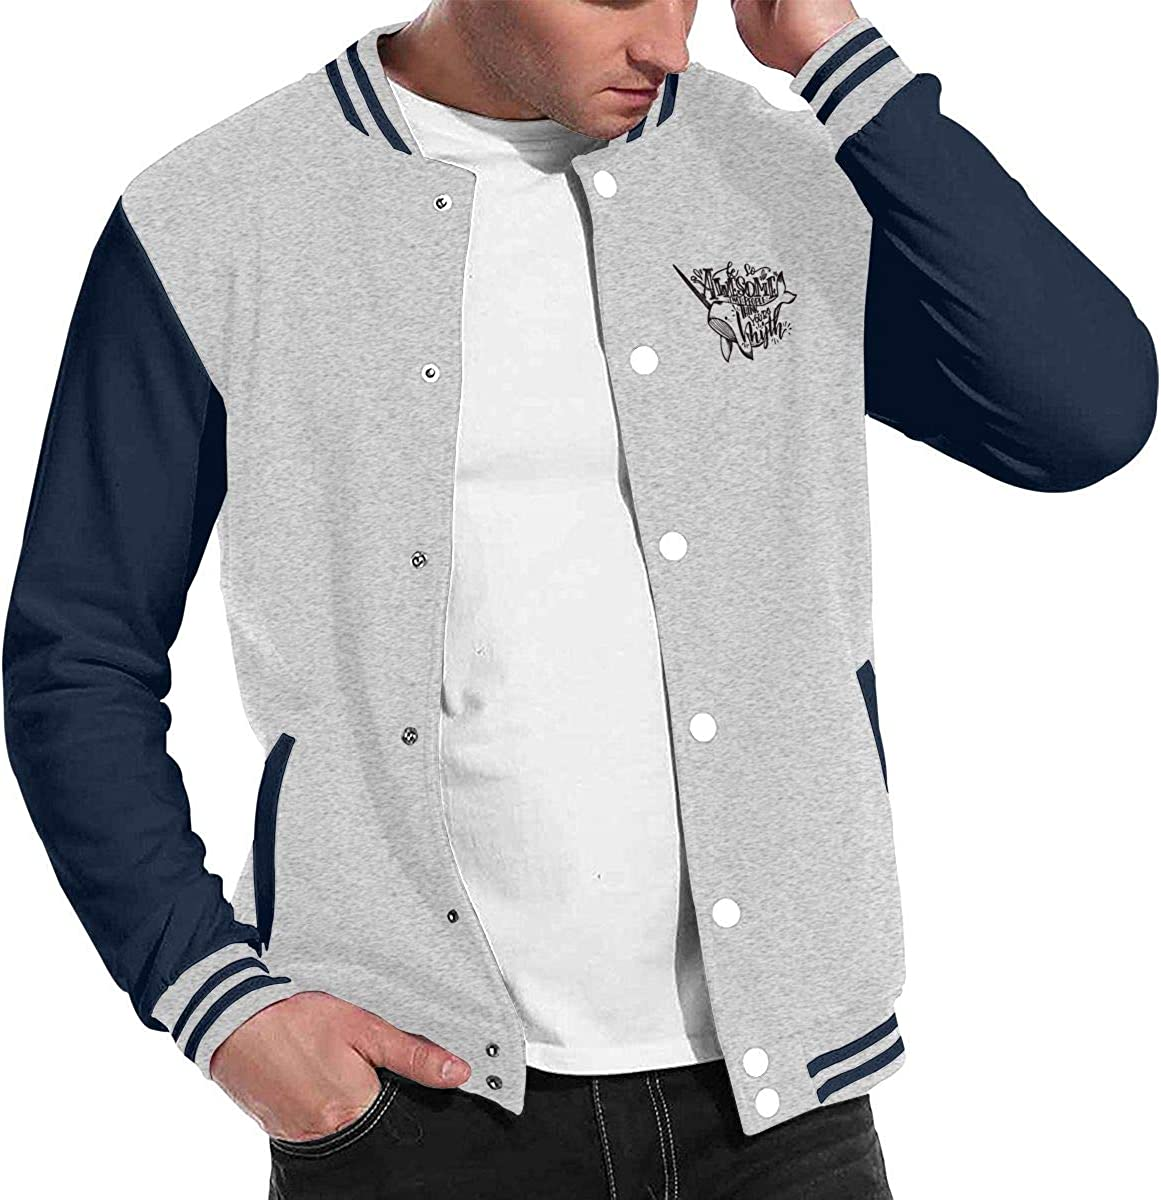 JJKKFG-H So Awesome That People Think Myth Narwhal Mens Style Baseball Uniform Jacket Sport Coat